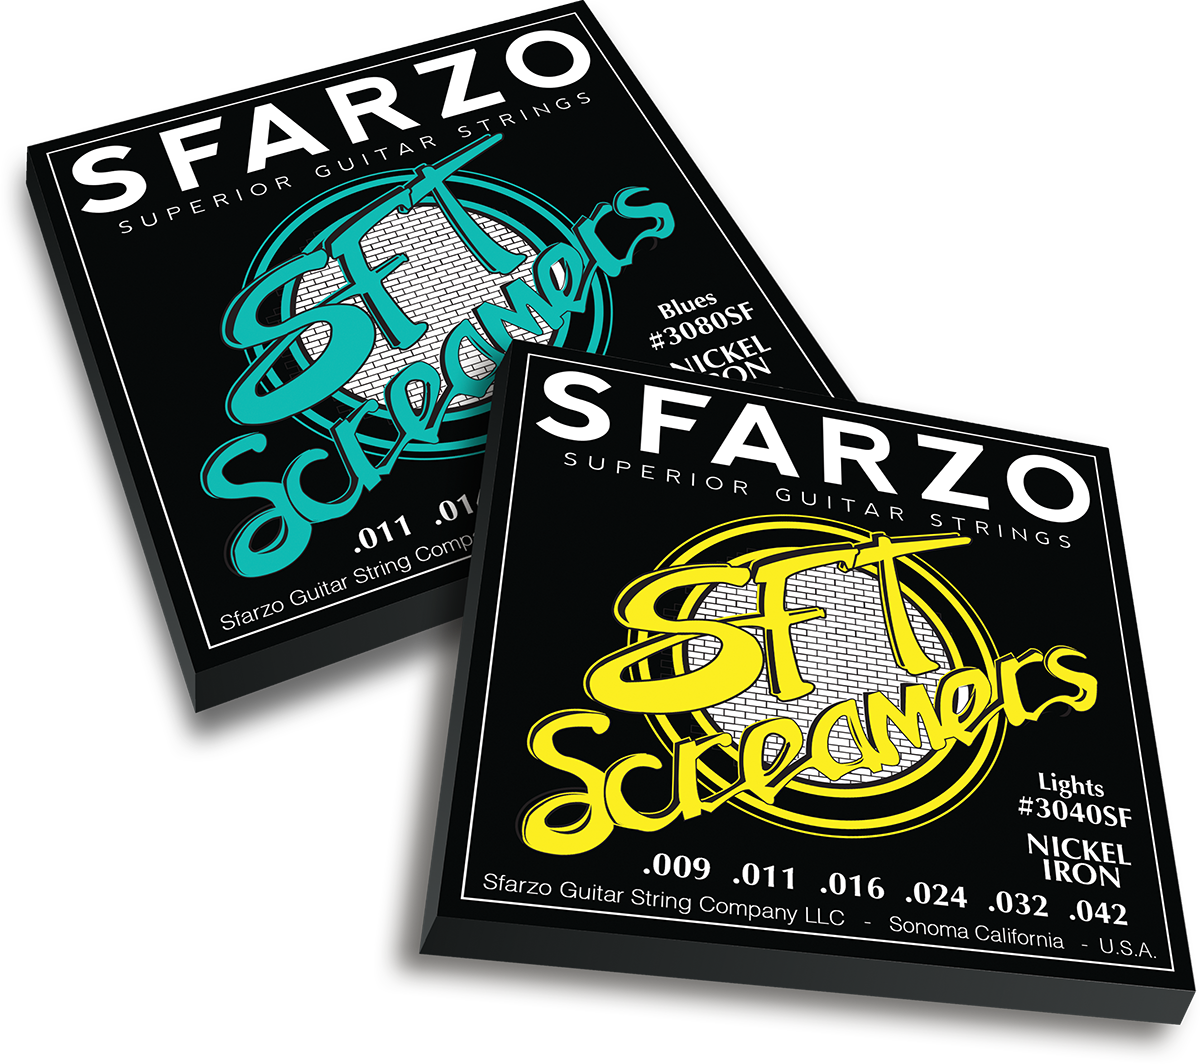 sft-strings-sfarzo-01.png